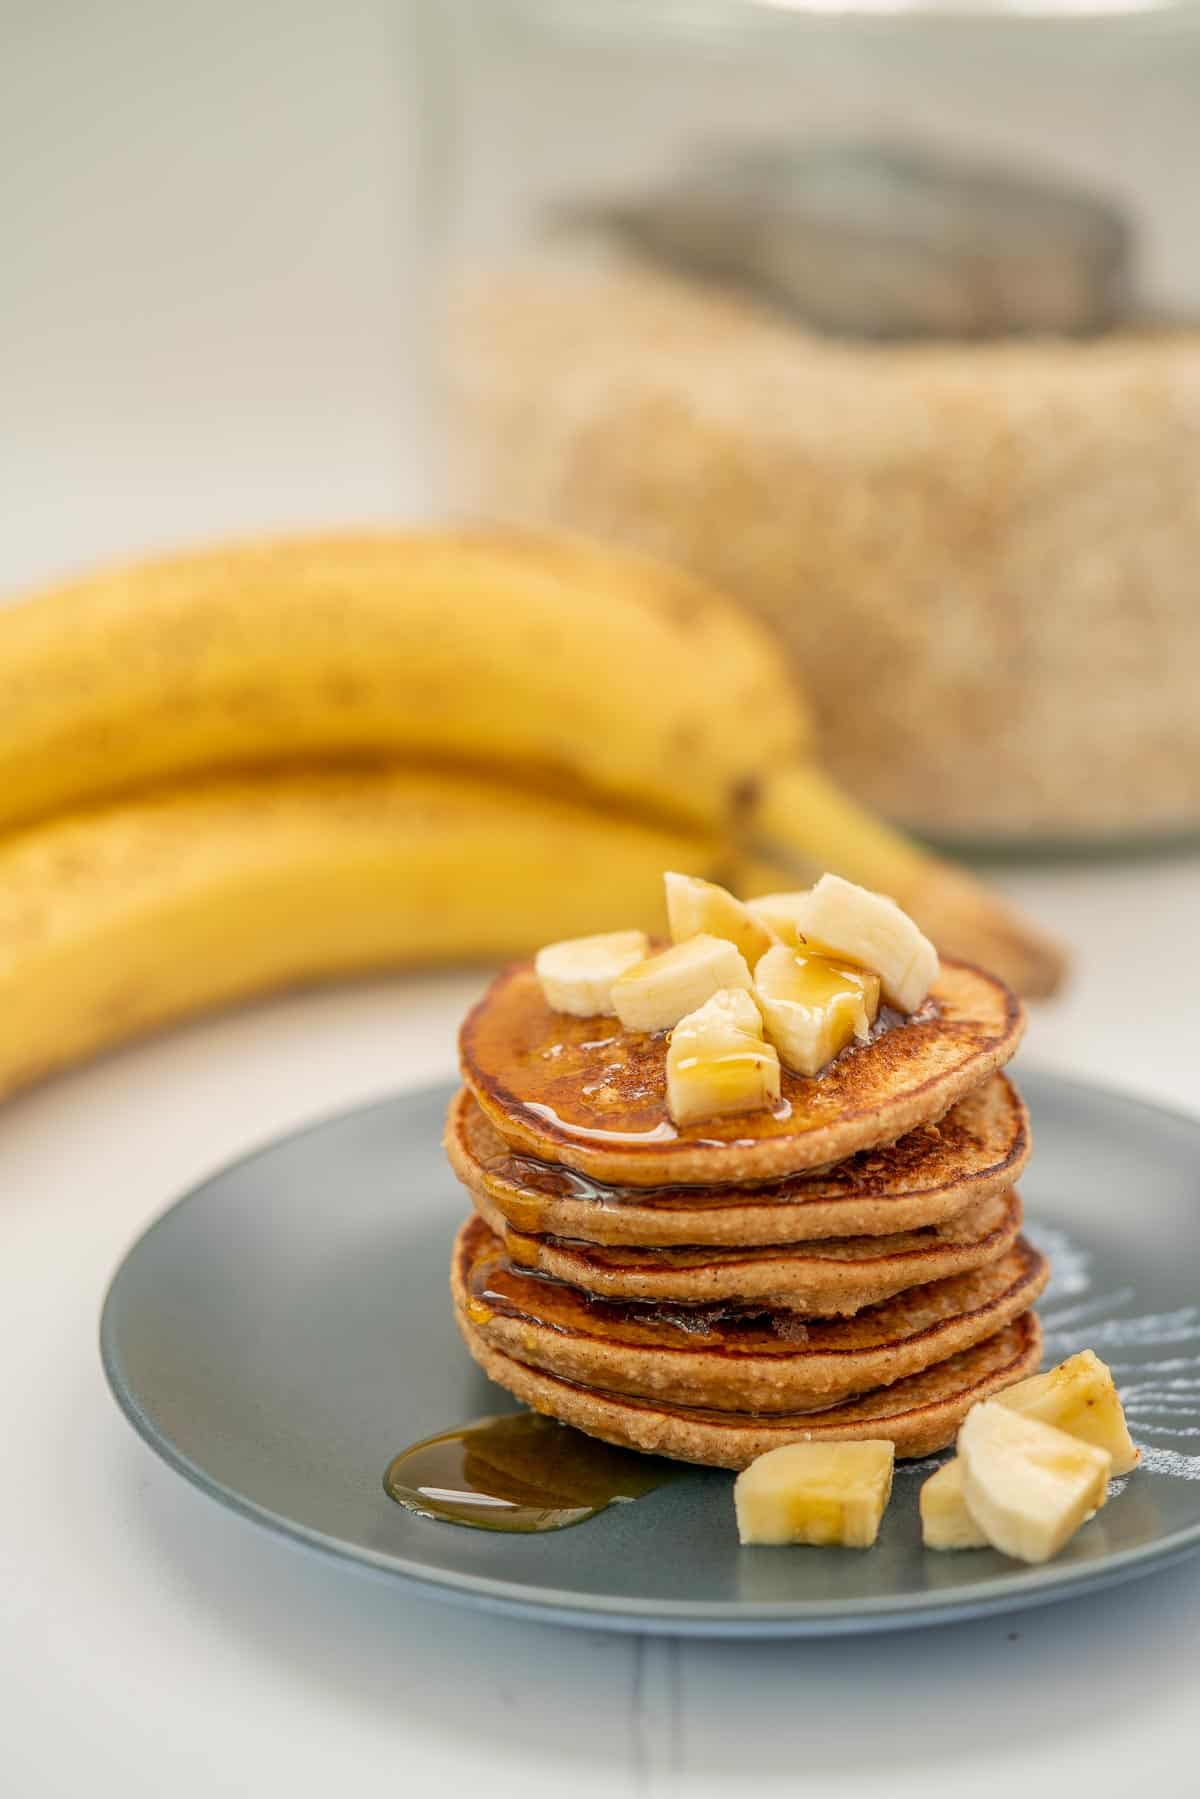 A stack of 5 pancakes on a blue plate with sliced banana and maple syrup., bananas and a jar of rolled oats in the background.